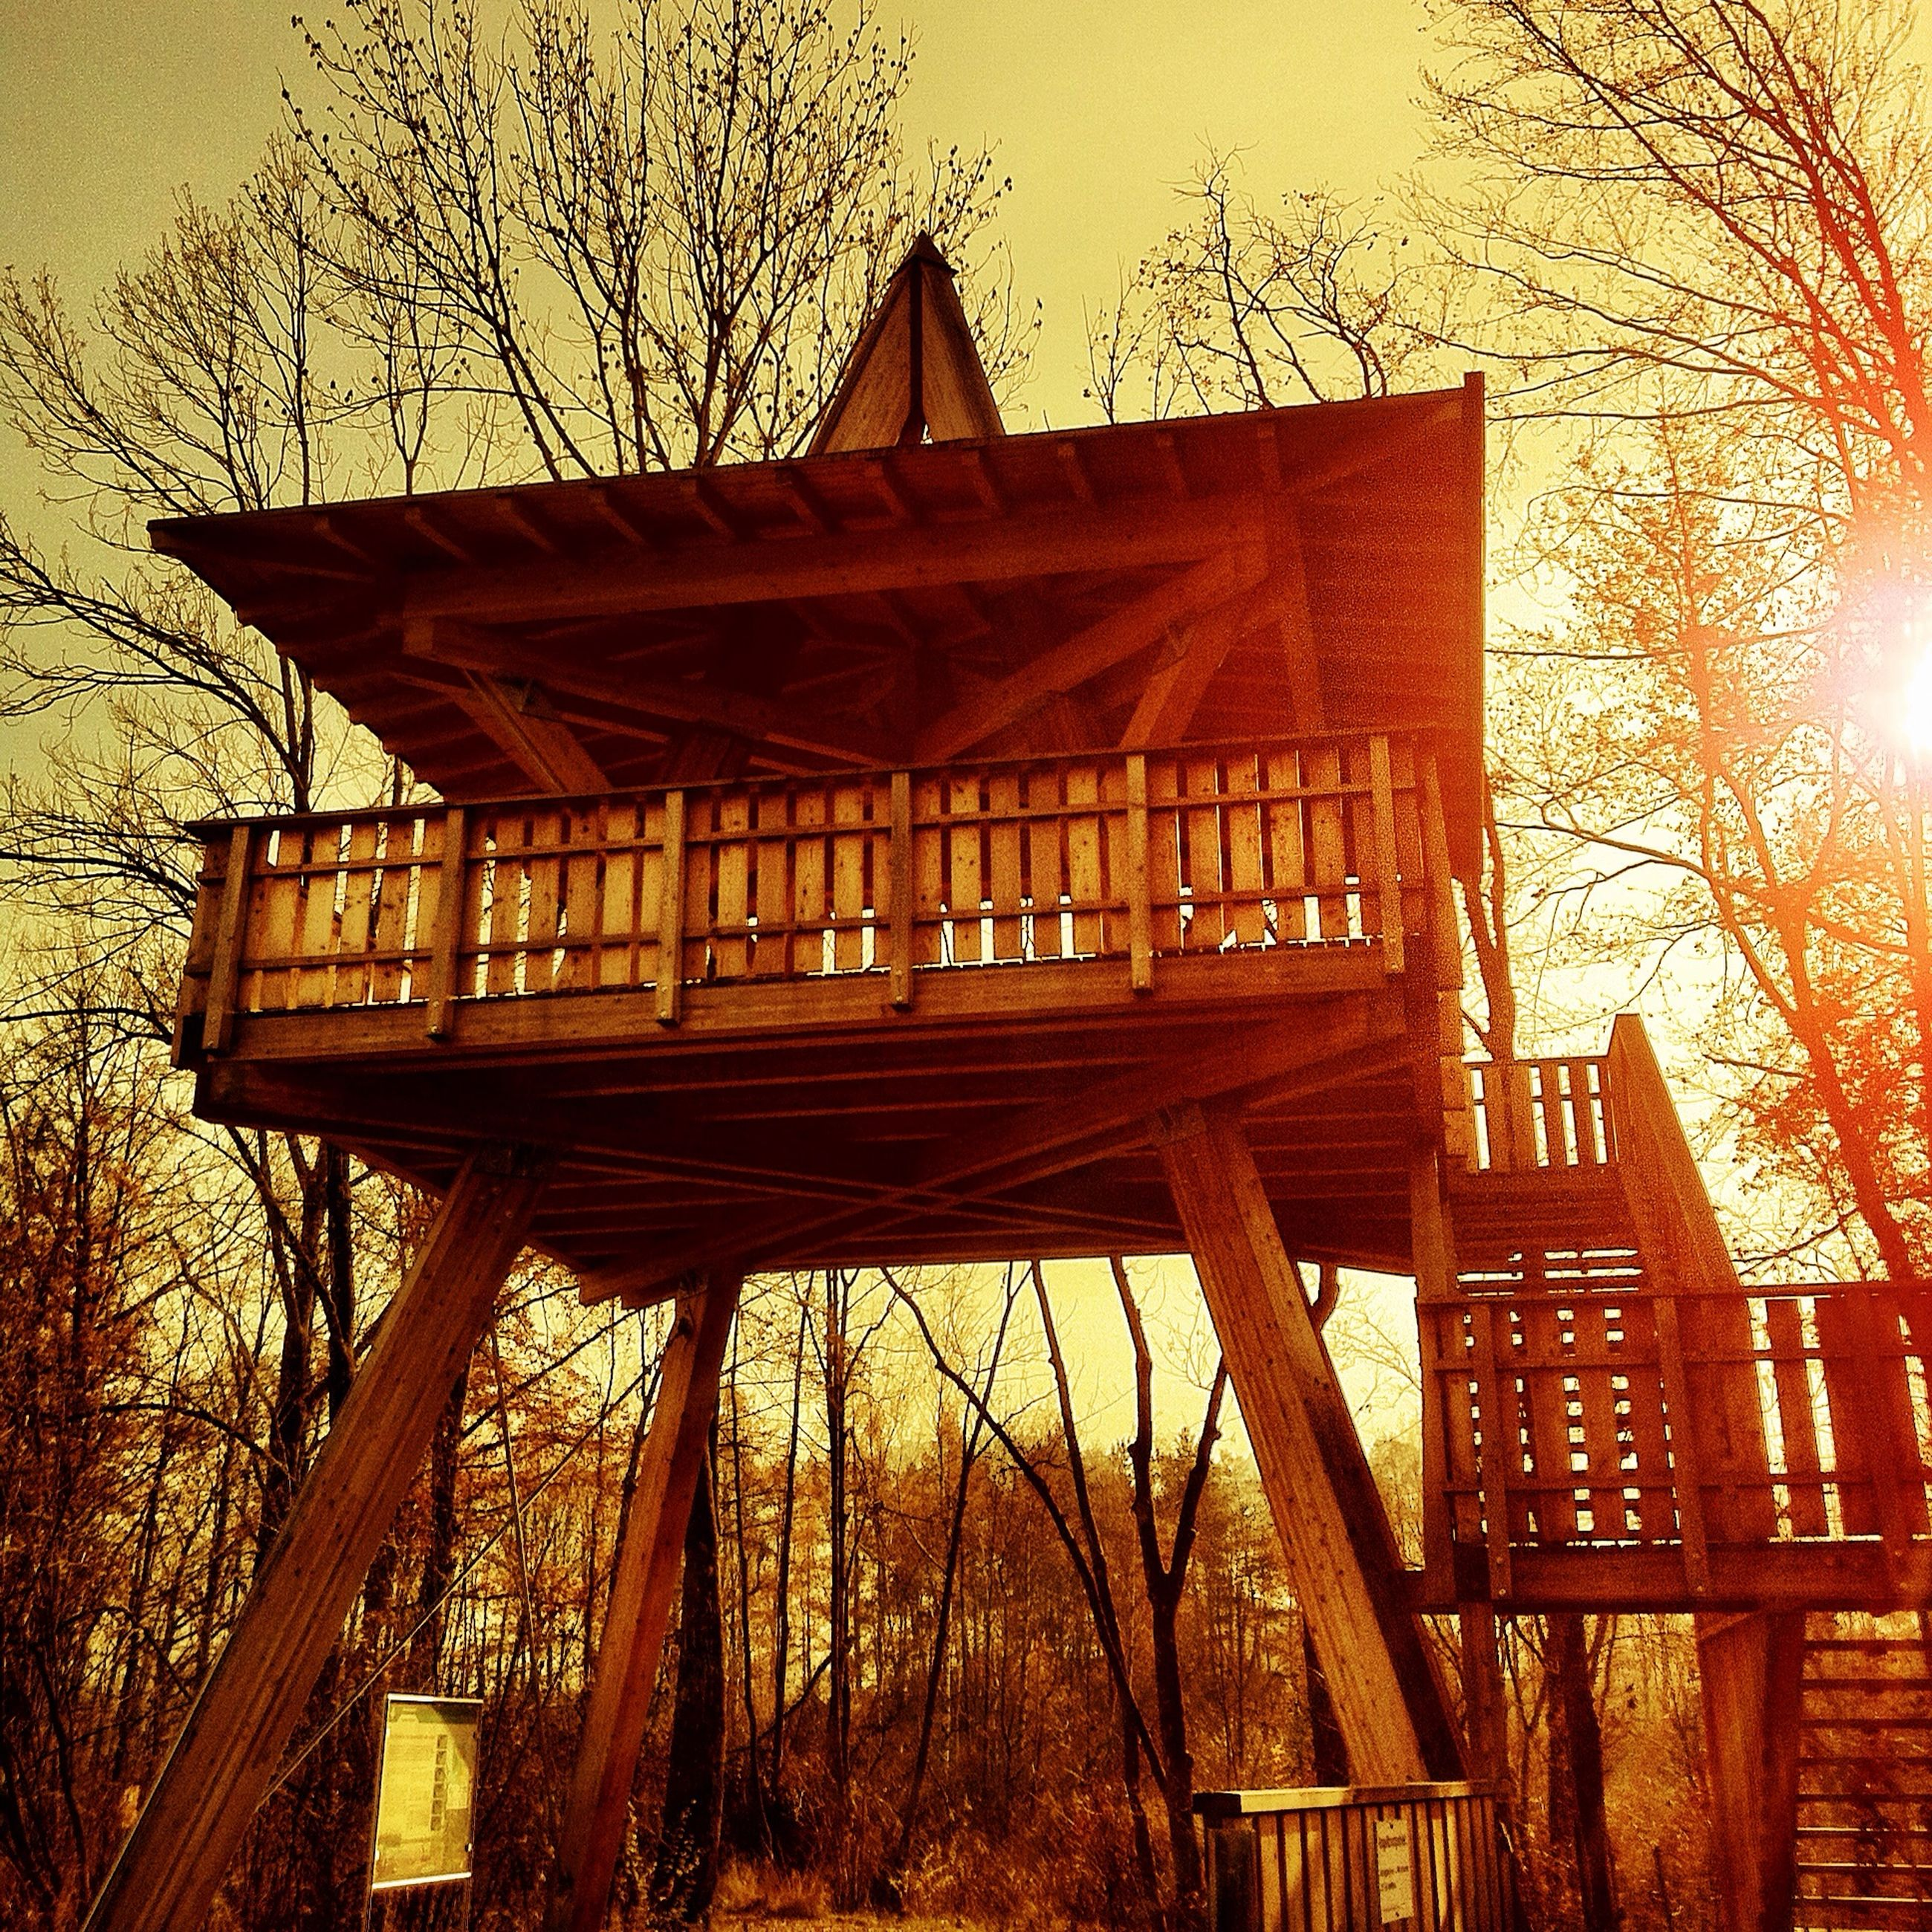 built structure, architecture, building exterior, tree, house, wood - material, low angle view, sunset, bare tree, sky, outdoors, no people, branch, sunlight, clear sky, residential structure, orange color, exterior, nature, day